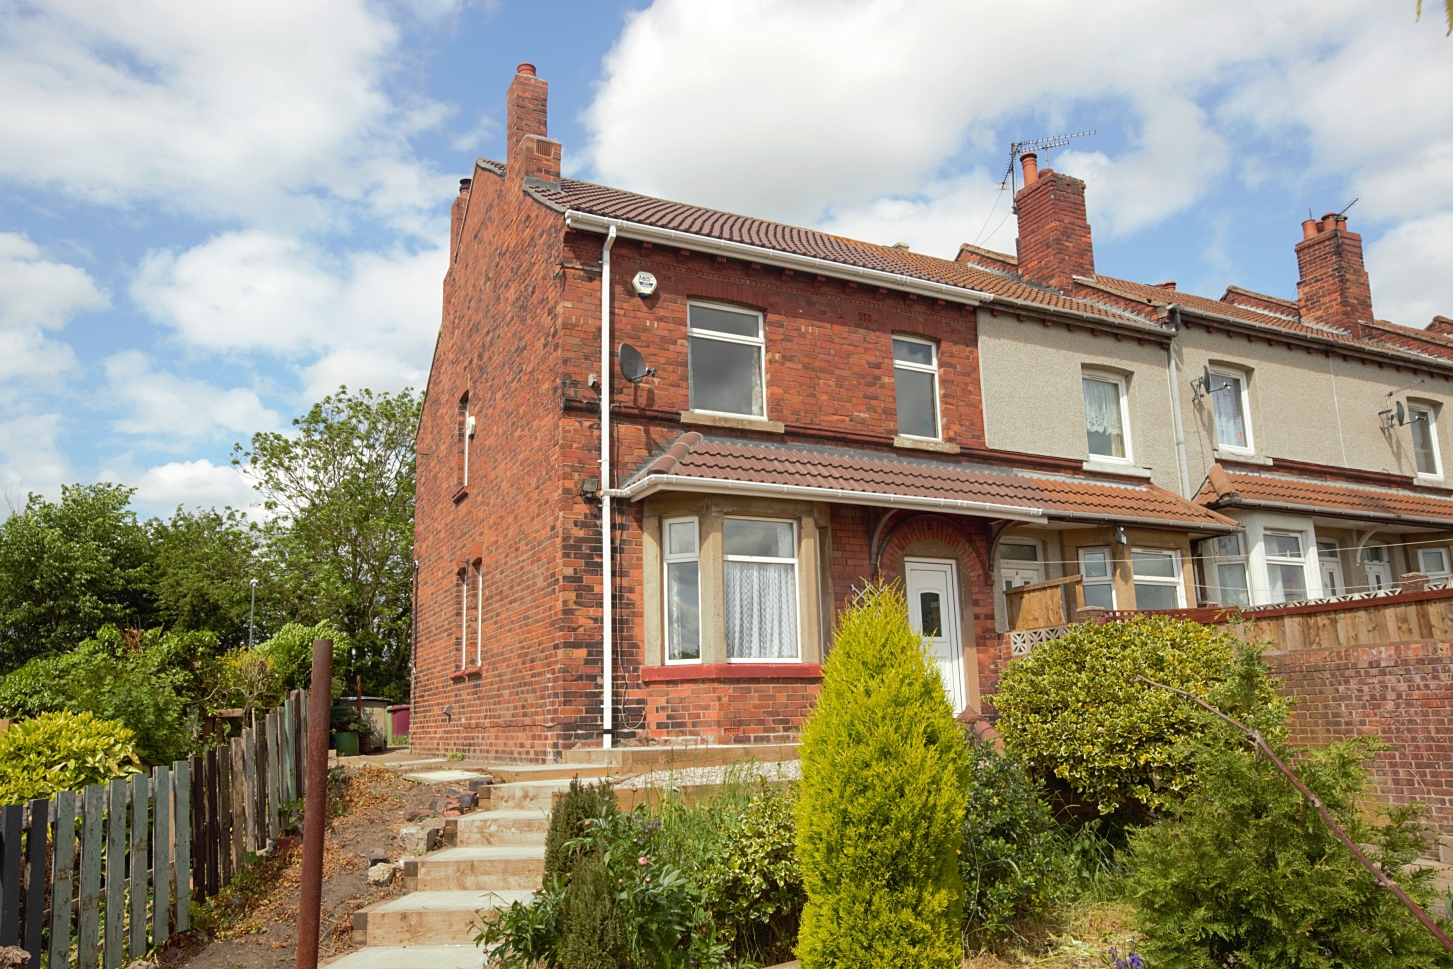 IT'S GONE! - £118,000 Cokefield Terrace, Pasture Lane, Hilcote, Derbyshire, DE55 5HW - 4 BEDROOM END TERRACENO ONWARD CHAIN. Excellent project! Generous four bedroom end terrace set in a large plot with two receptions, spacious kitchen and first floor family bathroom. Situated opposite a nature reserve, and with easy access to A38 & M1.